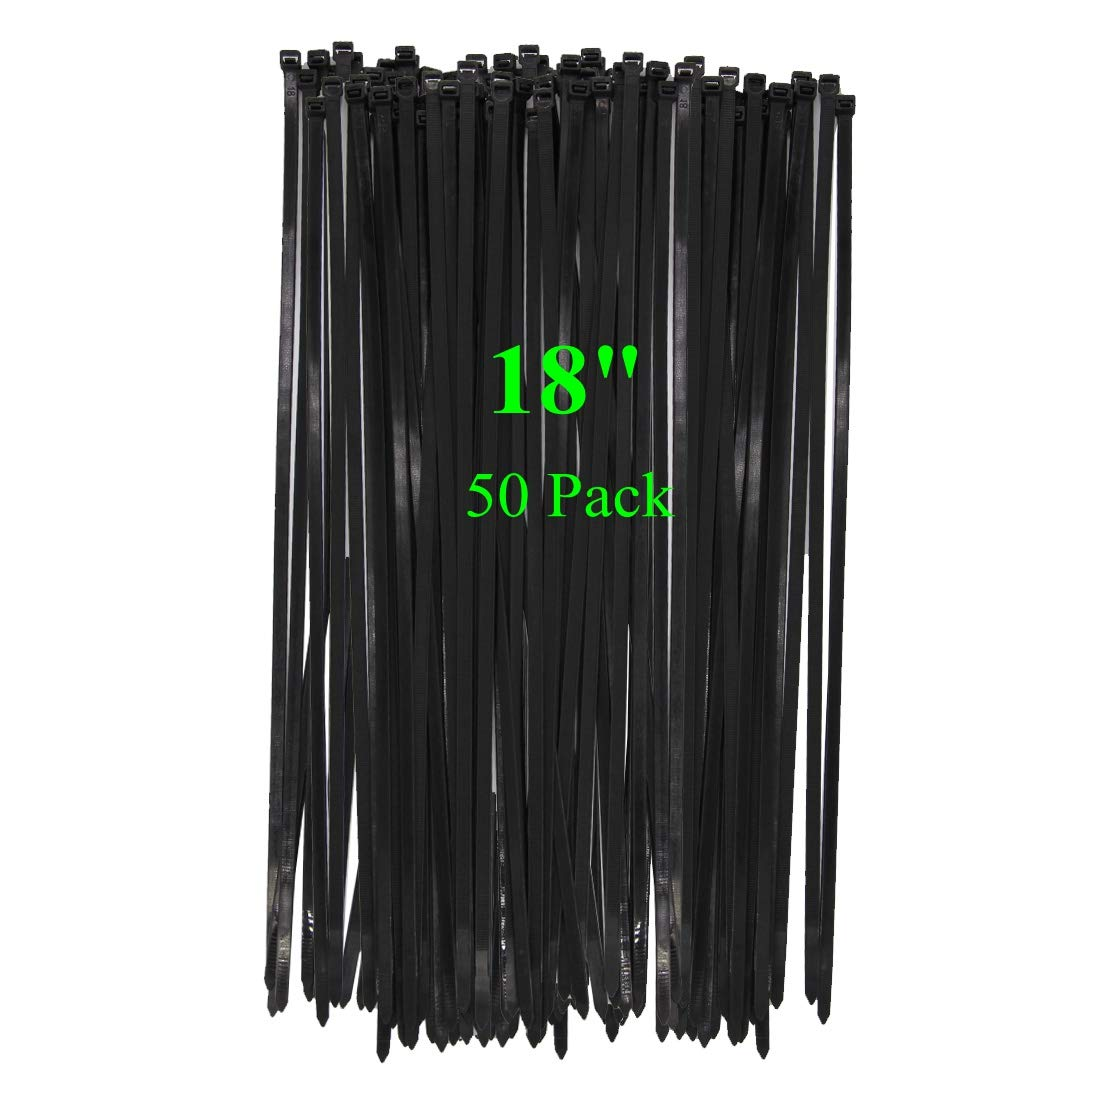 "Long Wide 18 Inch Nylon Zip Cable Ties-Large 120LB Tensile Strength-Heavy Duty Industrial Durable Strong Cable Ties- 50 Pack - Indoor Outdoor Garden Ties Use(18"",120LB, Black, UV Resistant)"